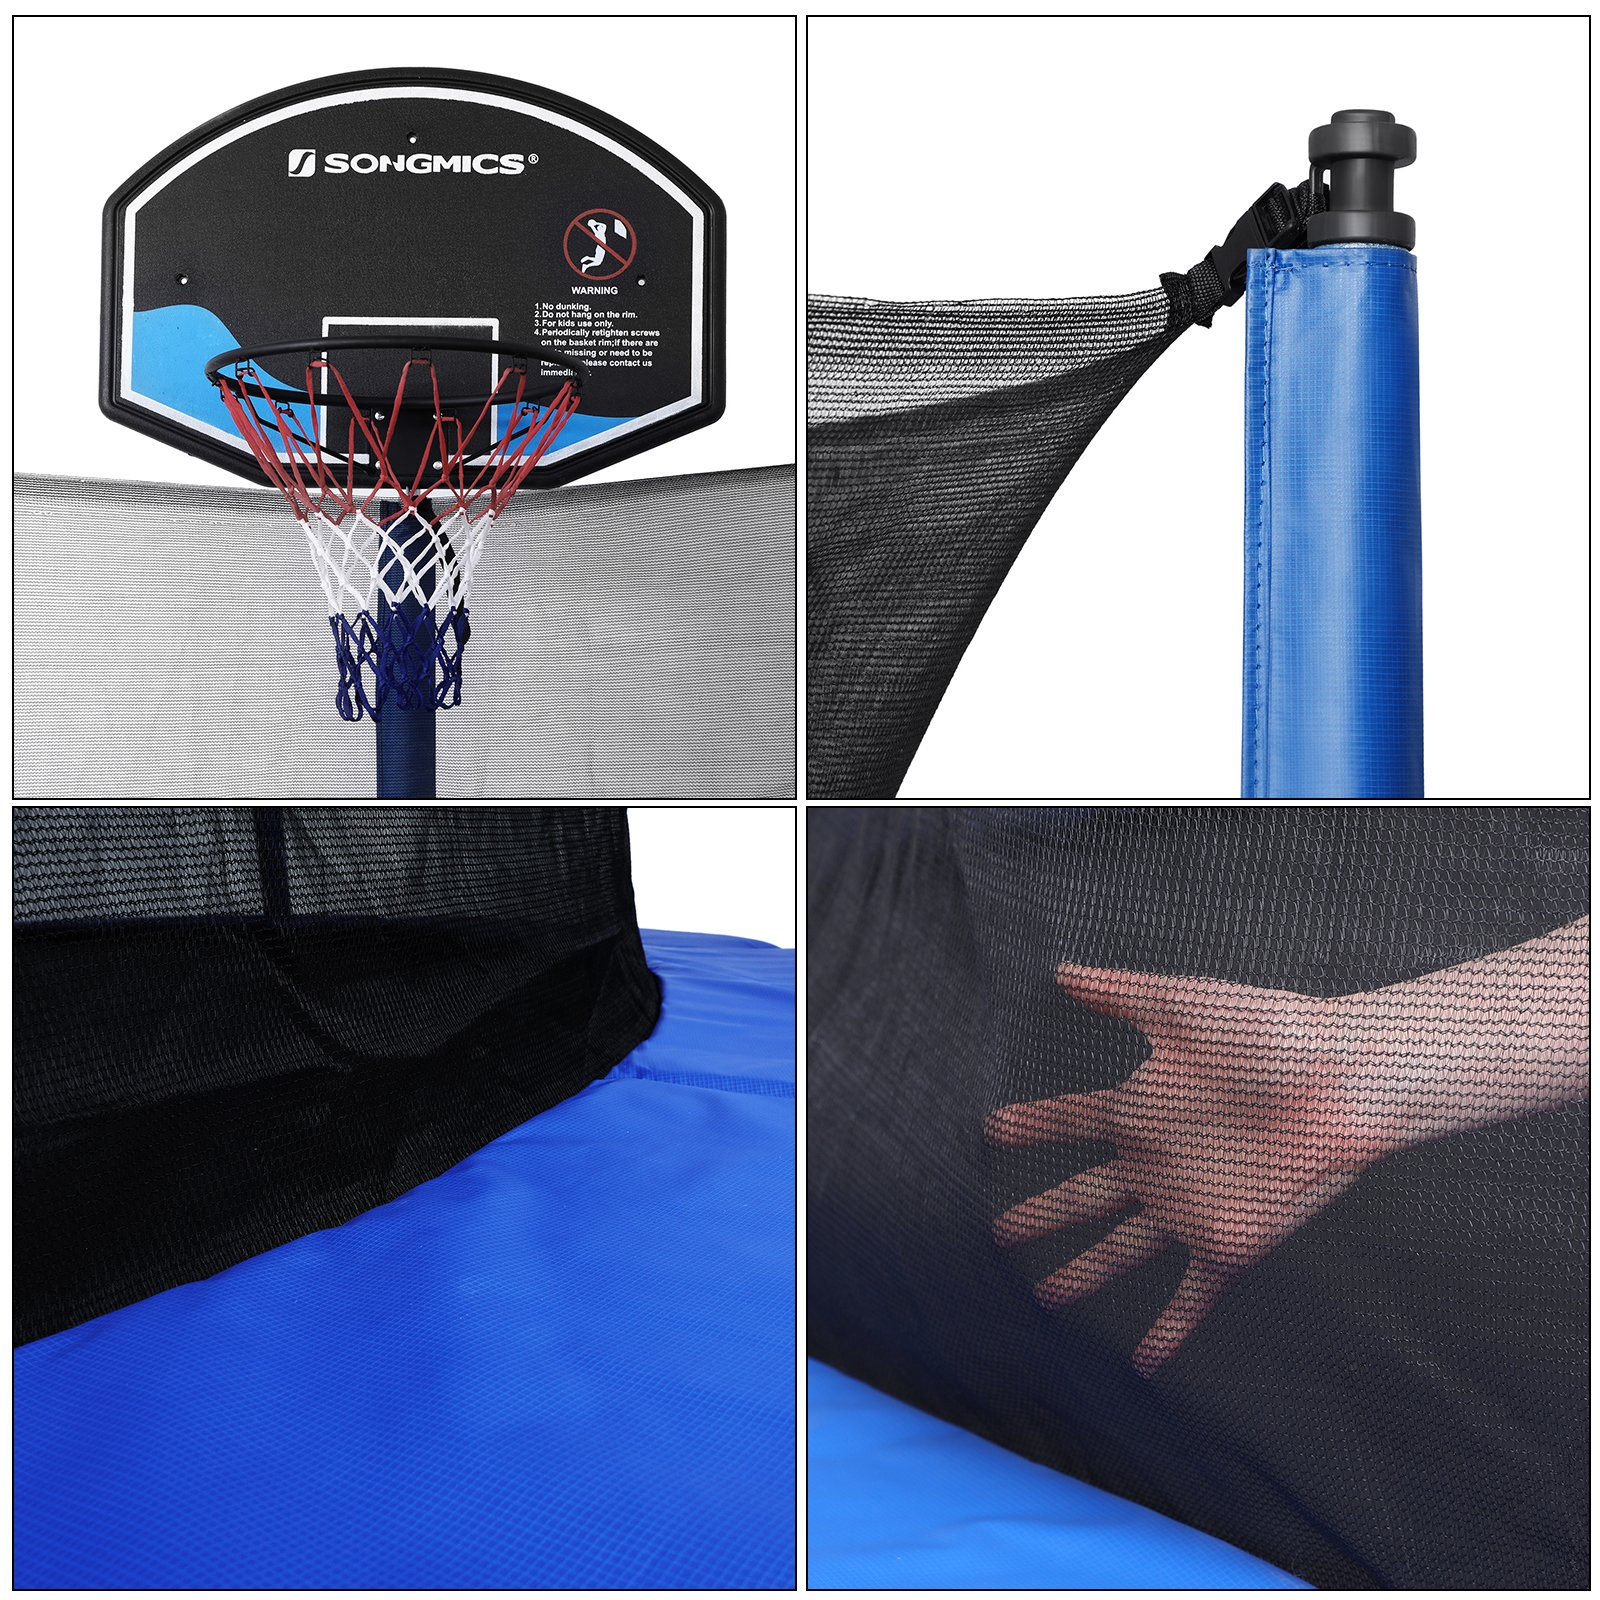 SONGMICS Outdoor Trampoline 14-Feet for Kids with Basketball Hoop and Backboard Enclosure Net Jumping Mat and Safety Spring Cover Padding TÜV Rheinland Certificated According to ASTM and GS USTR14BU by SONGMICS (Image #8)